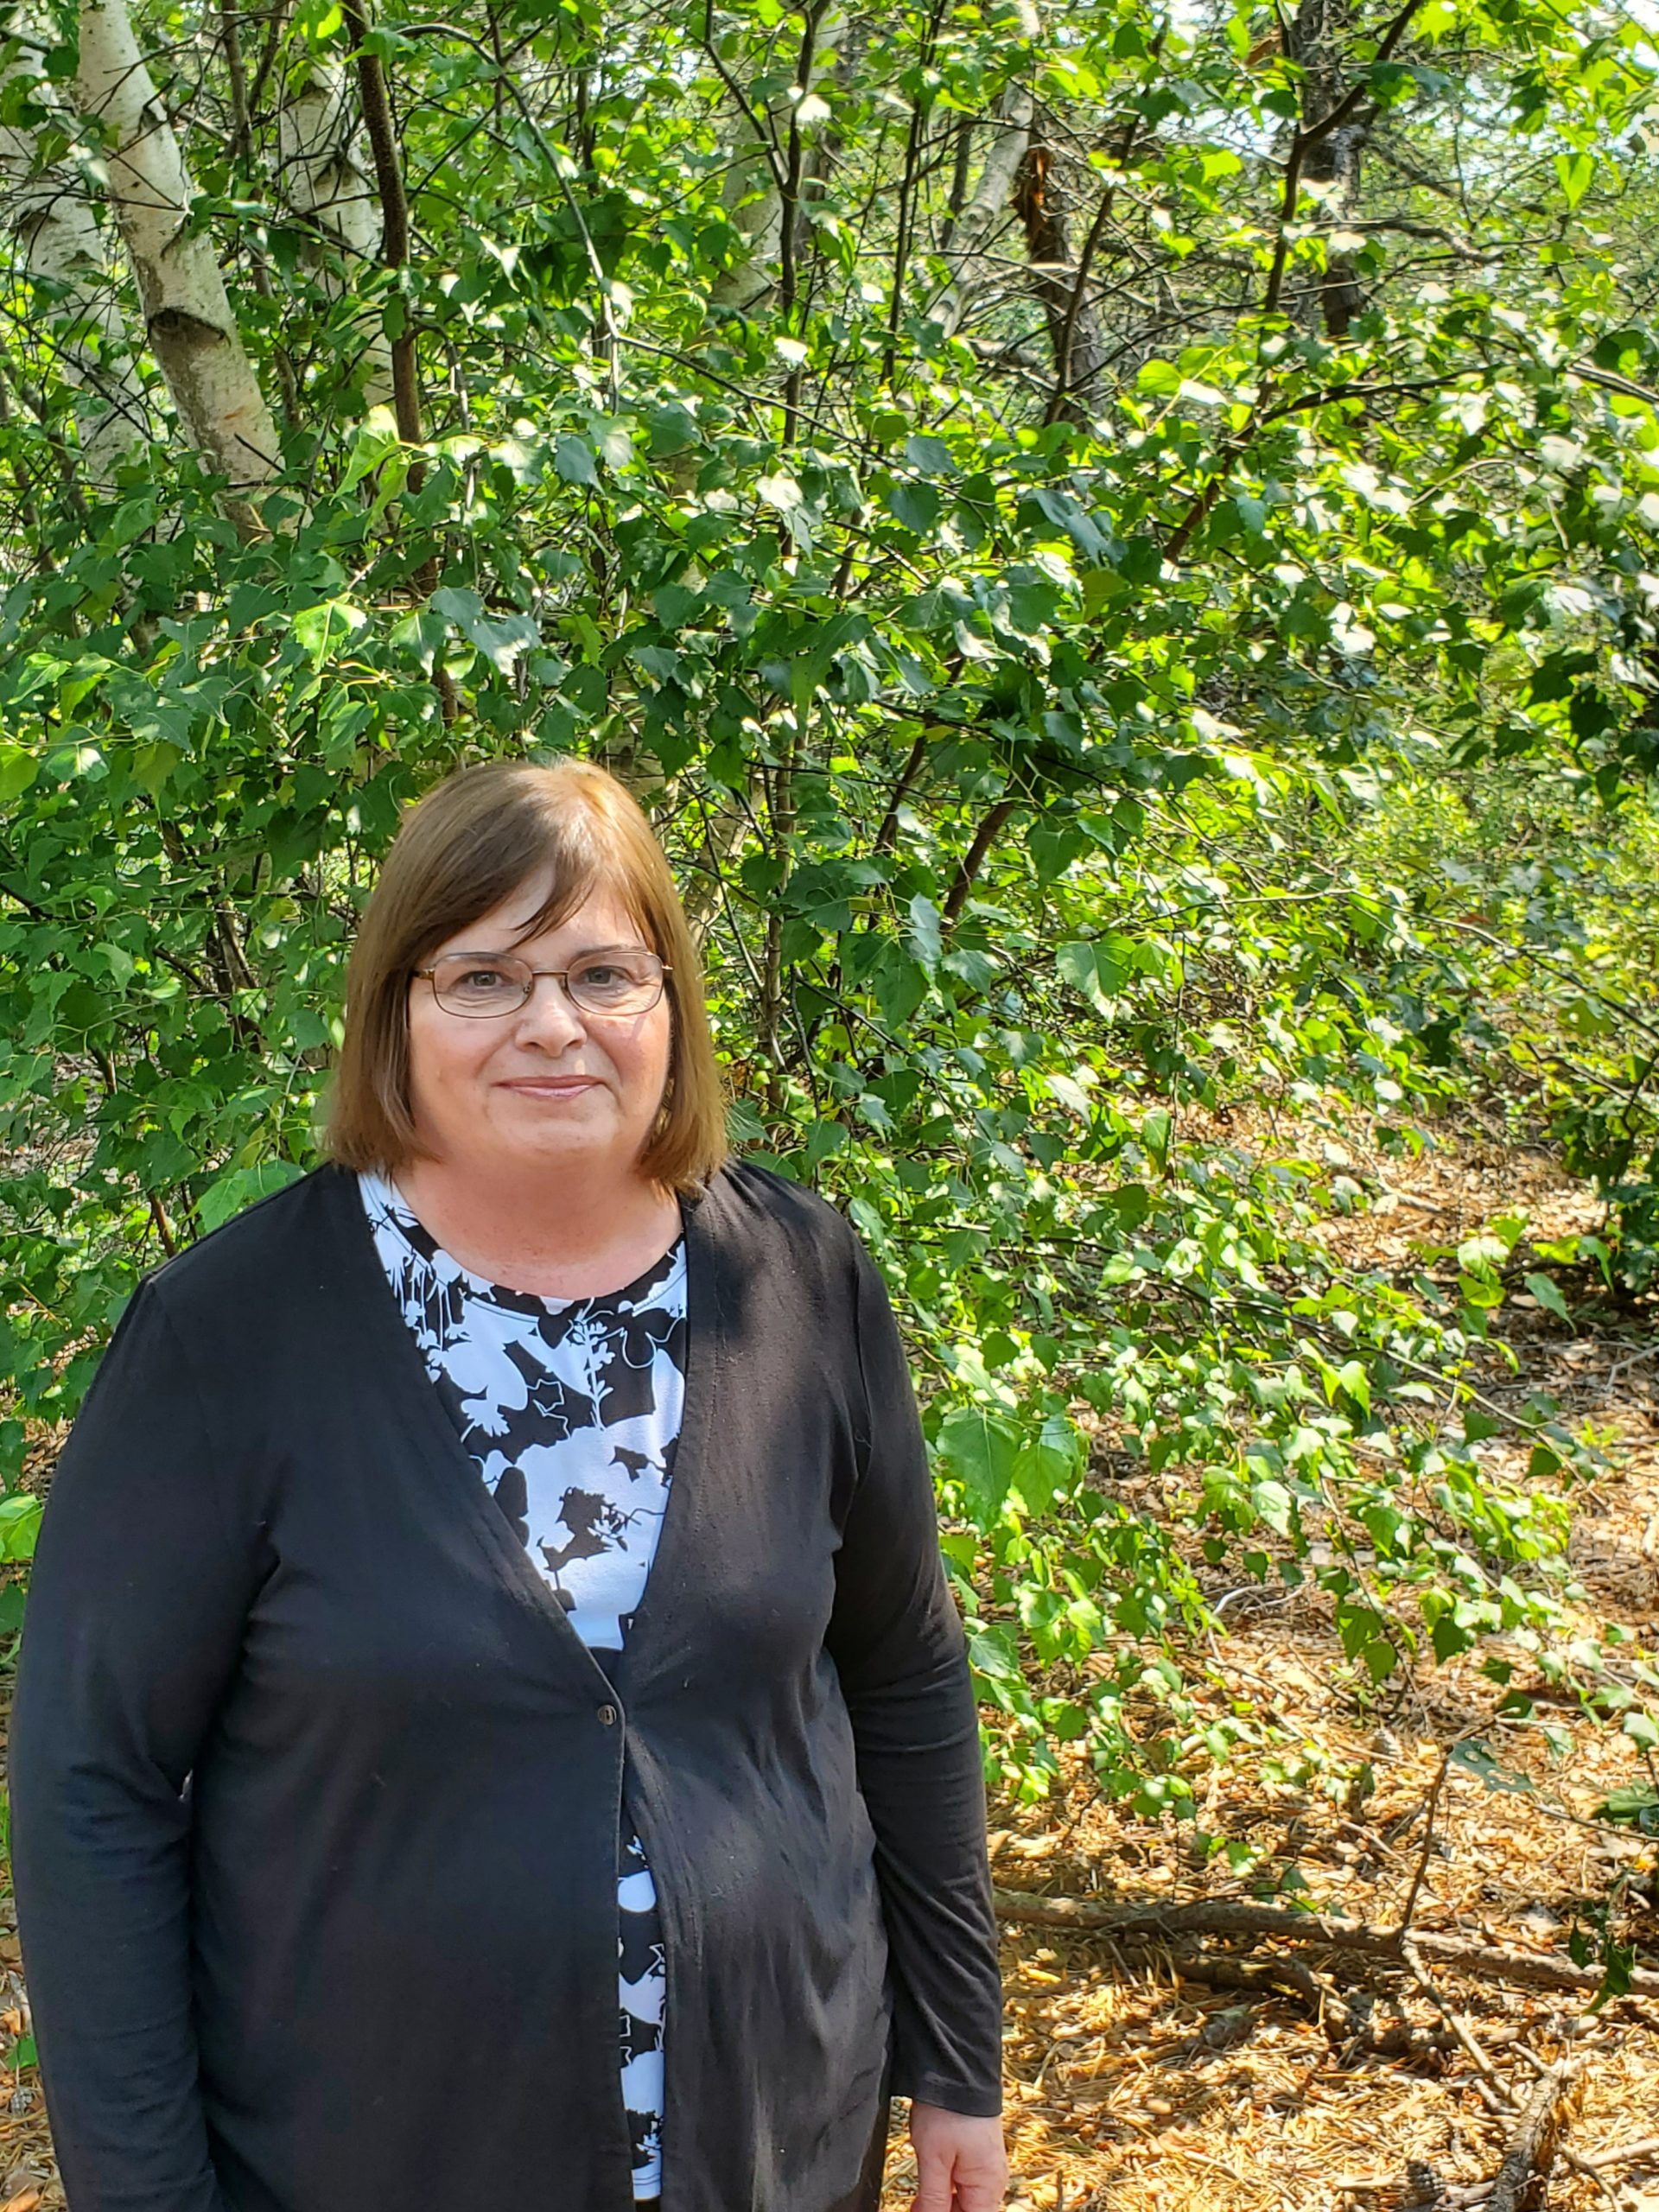 Judy Jakobsen was named executive director of the Central Pine Barrens Commission.